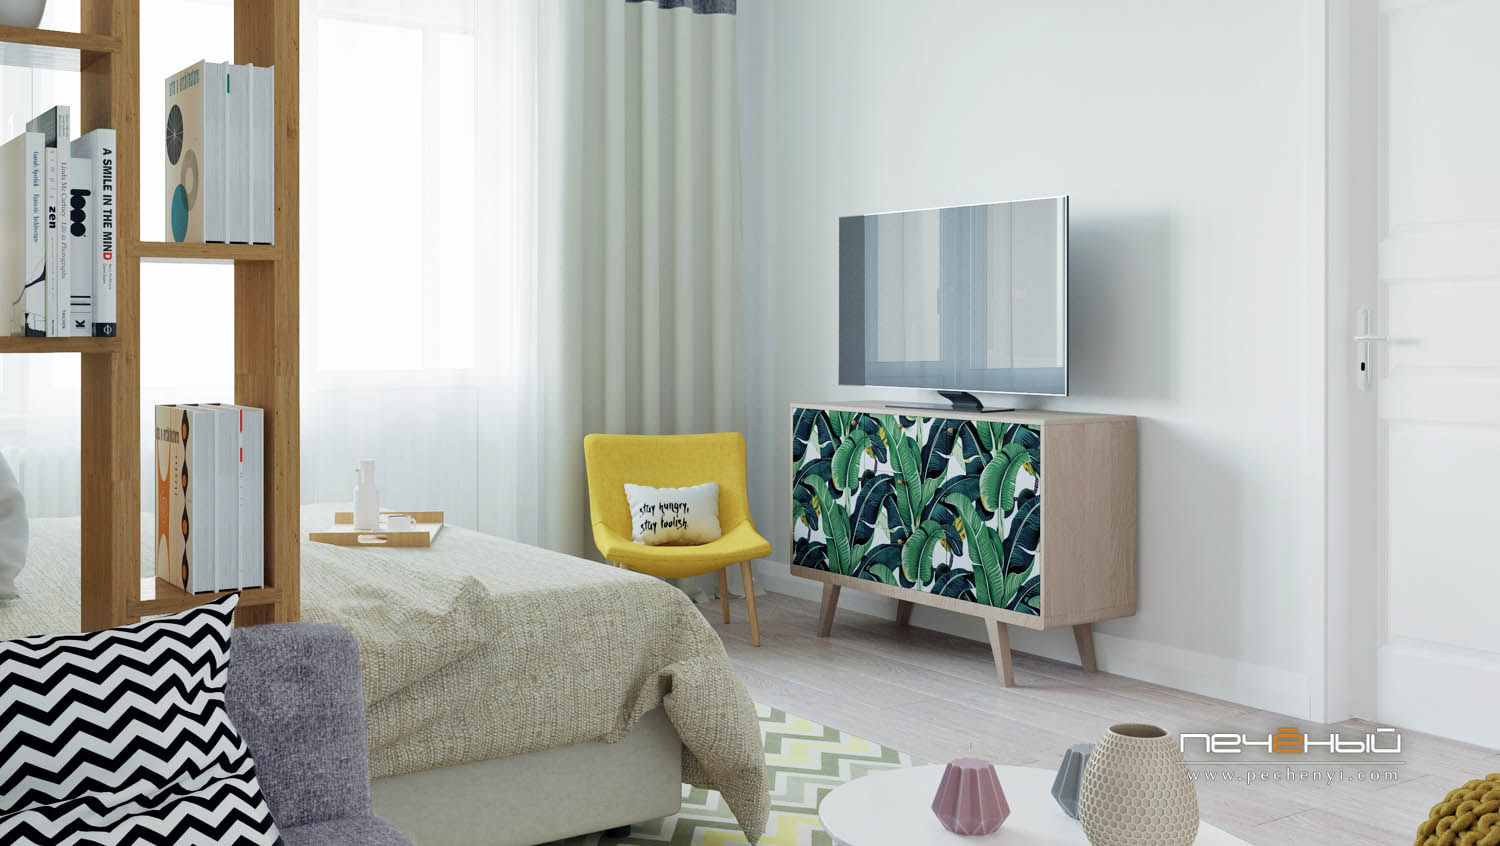 A colorful chair, a TV placed on a credenza with a banana leaf print and pastel textiles add a vivacious touch